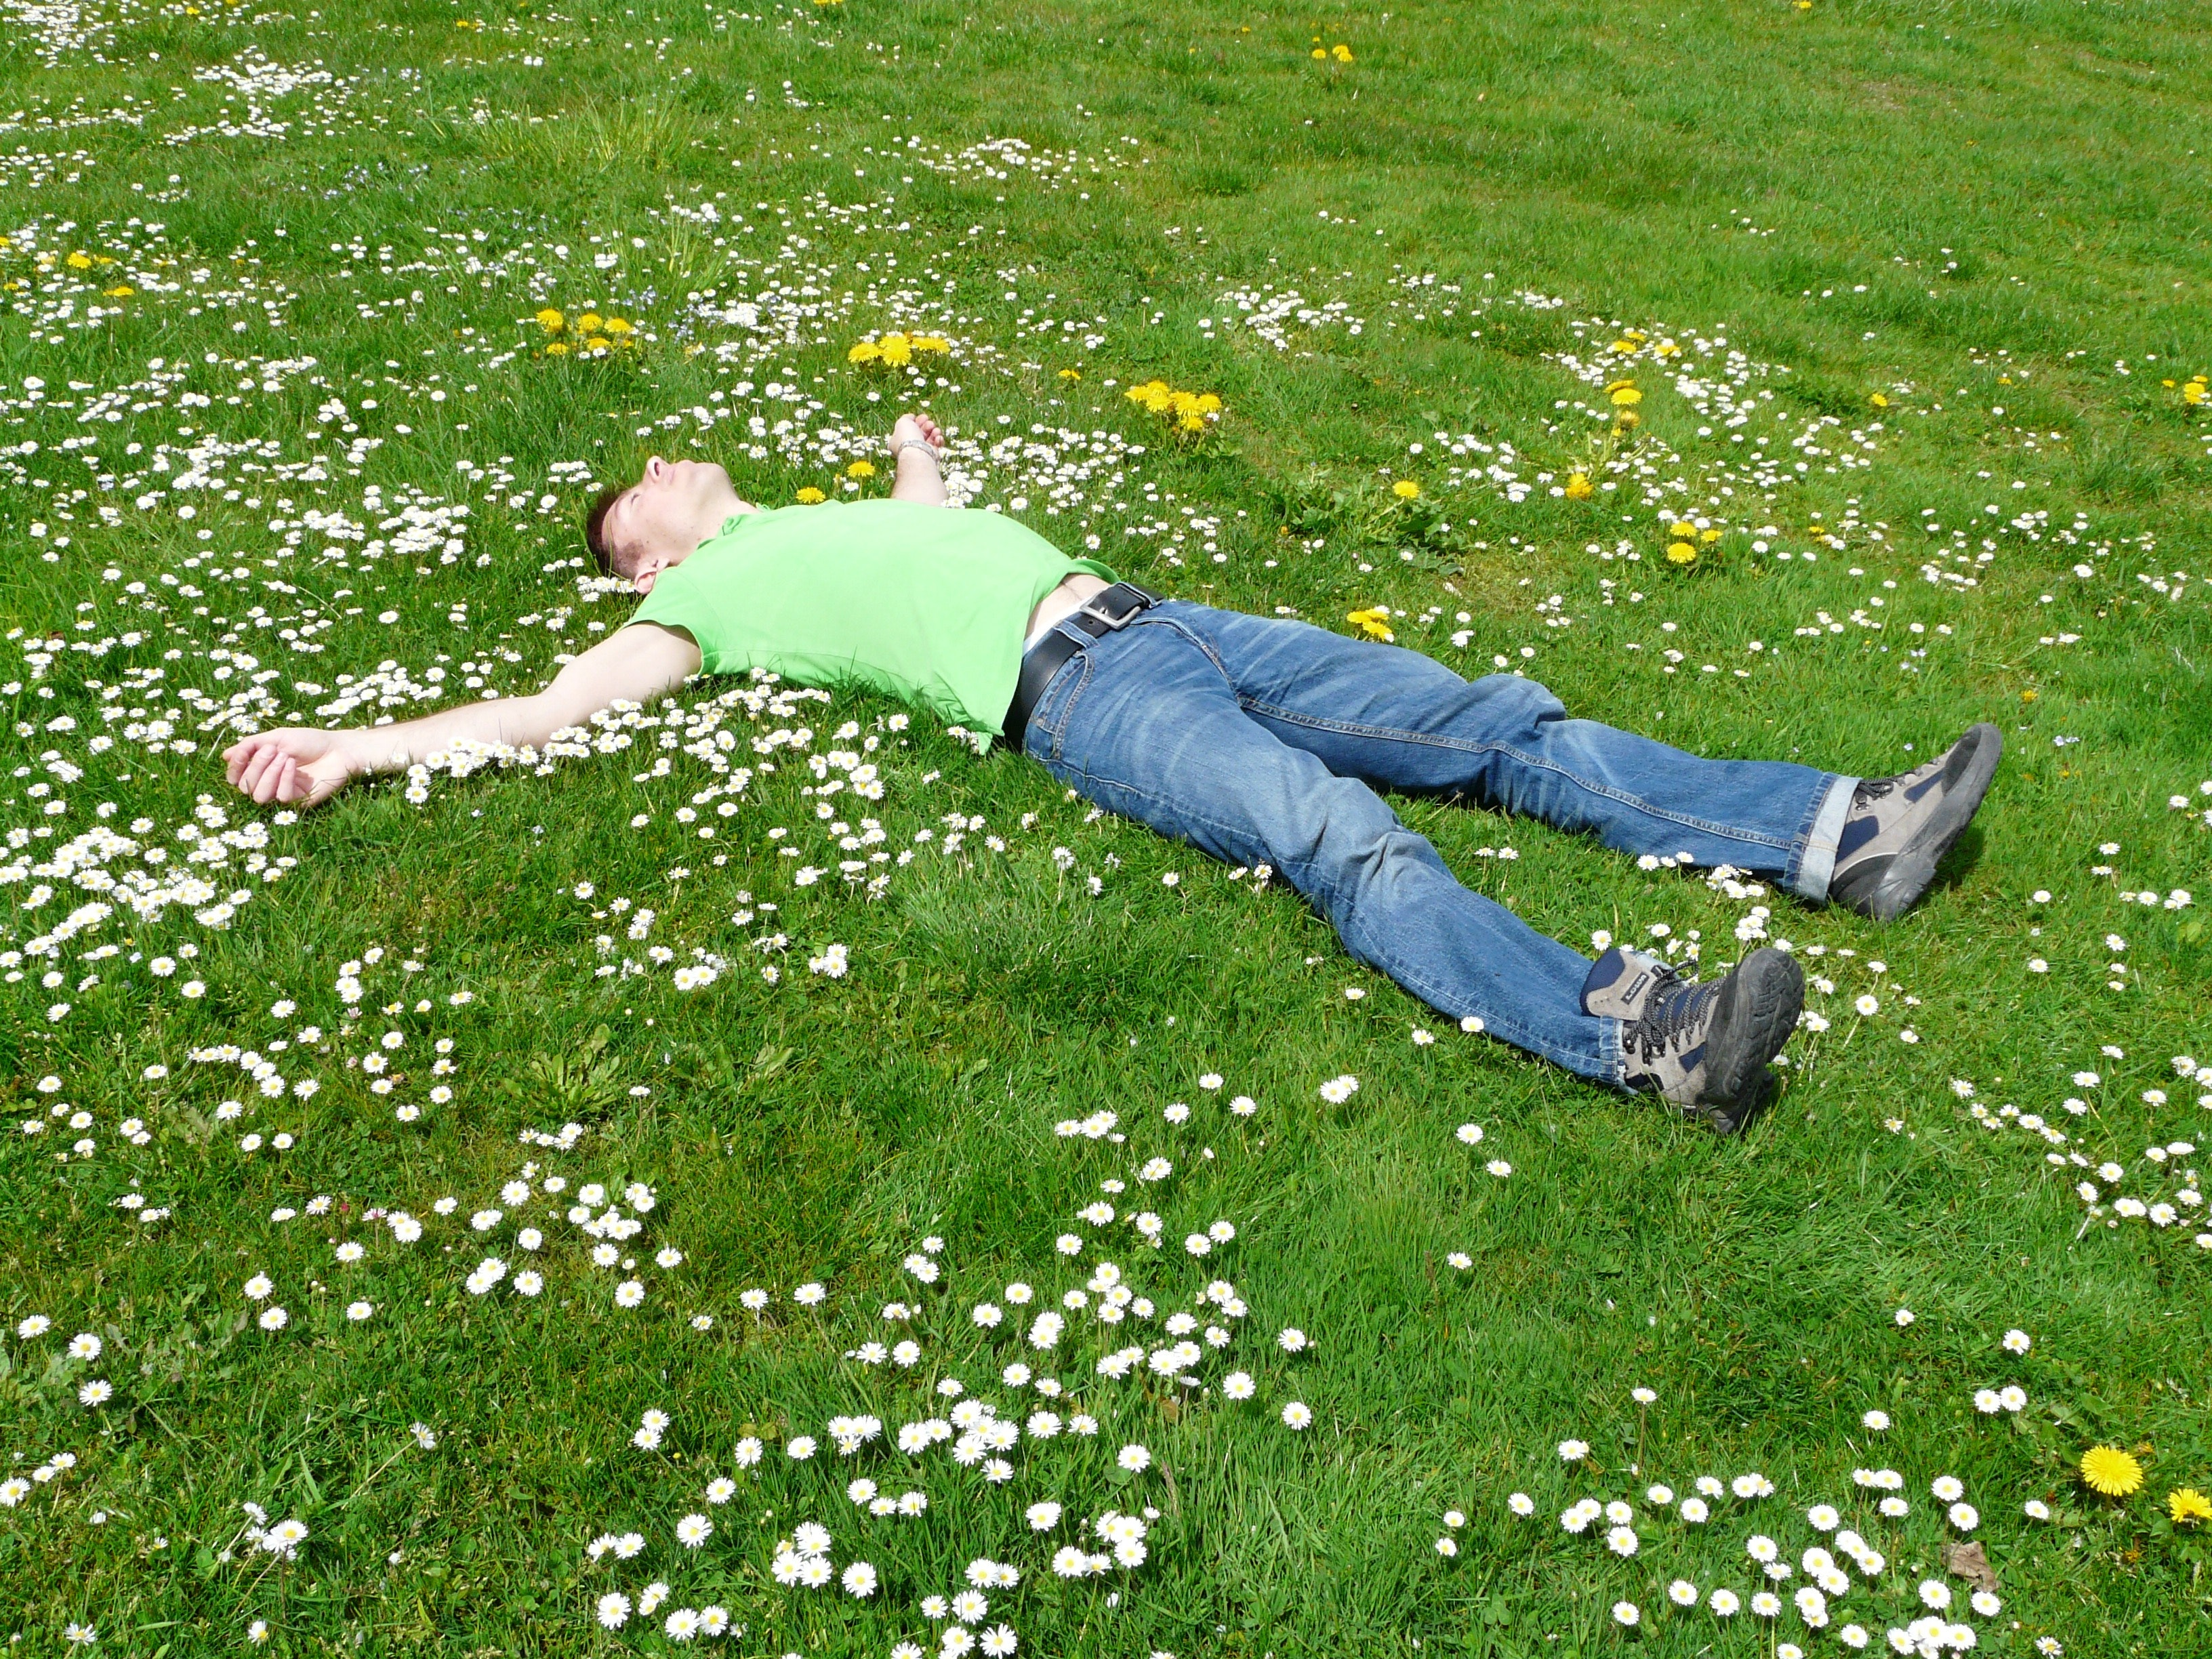 High Angle View of Lying Down on Grass, Bloom, Looking up, Man, Meadow, HQ Photo